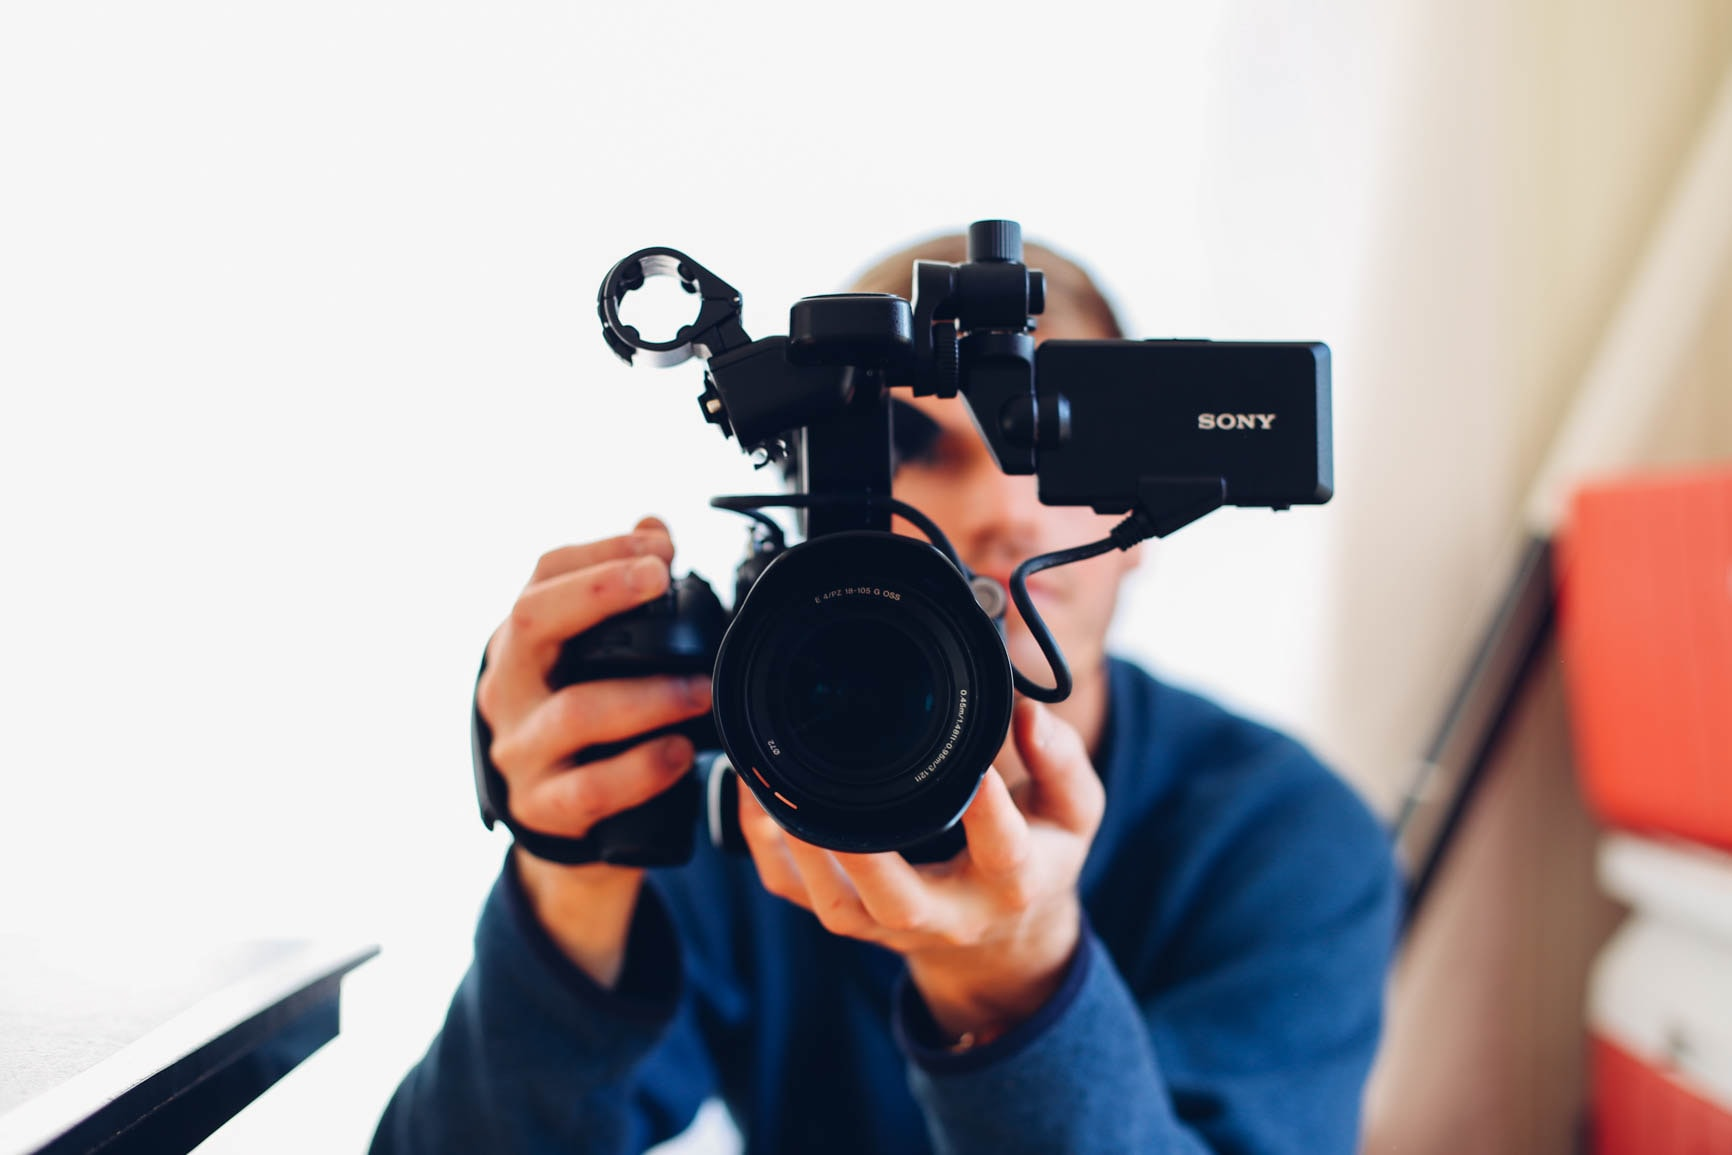 Using Video to Connect With Customers